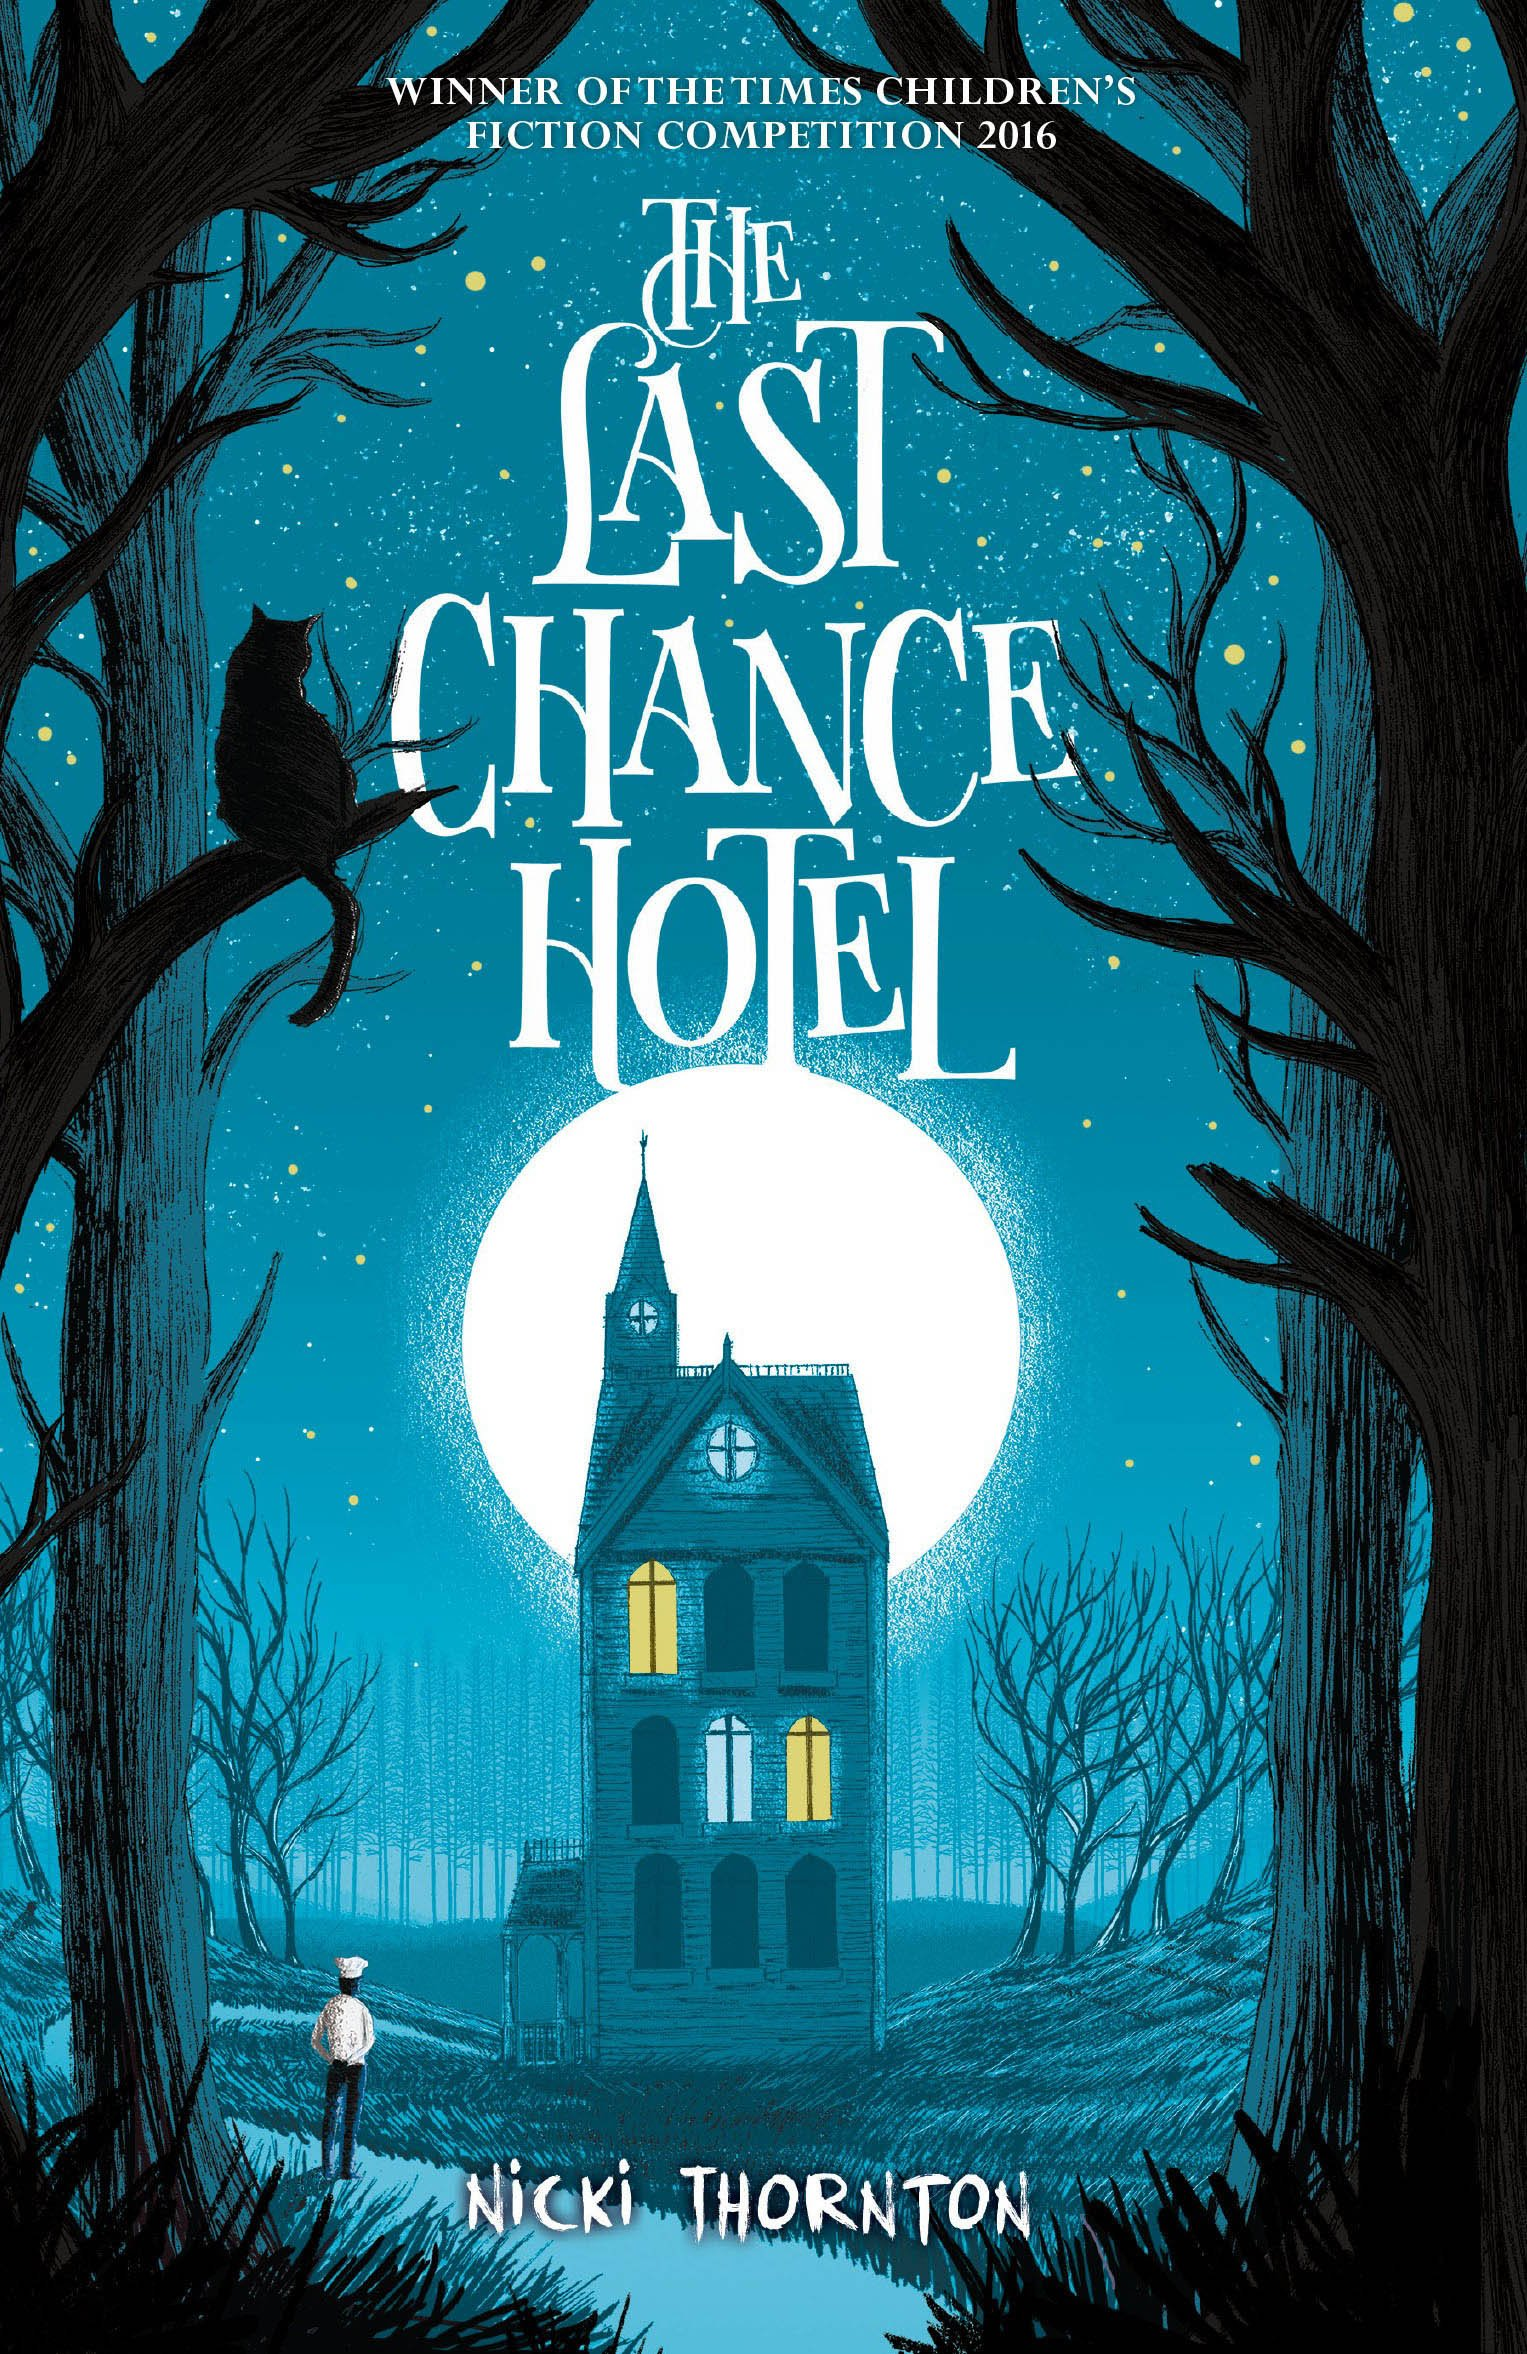 The Last Chance Hotel: Amazon.co.uk: Nicki Thornton: 9781911077671 ...